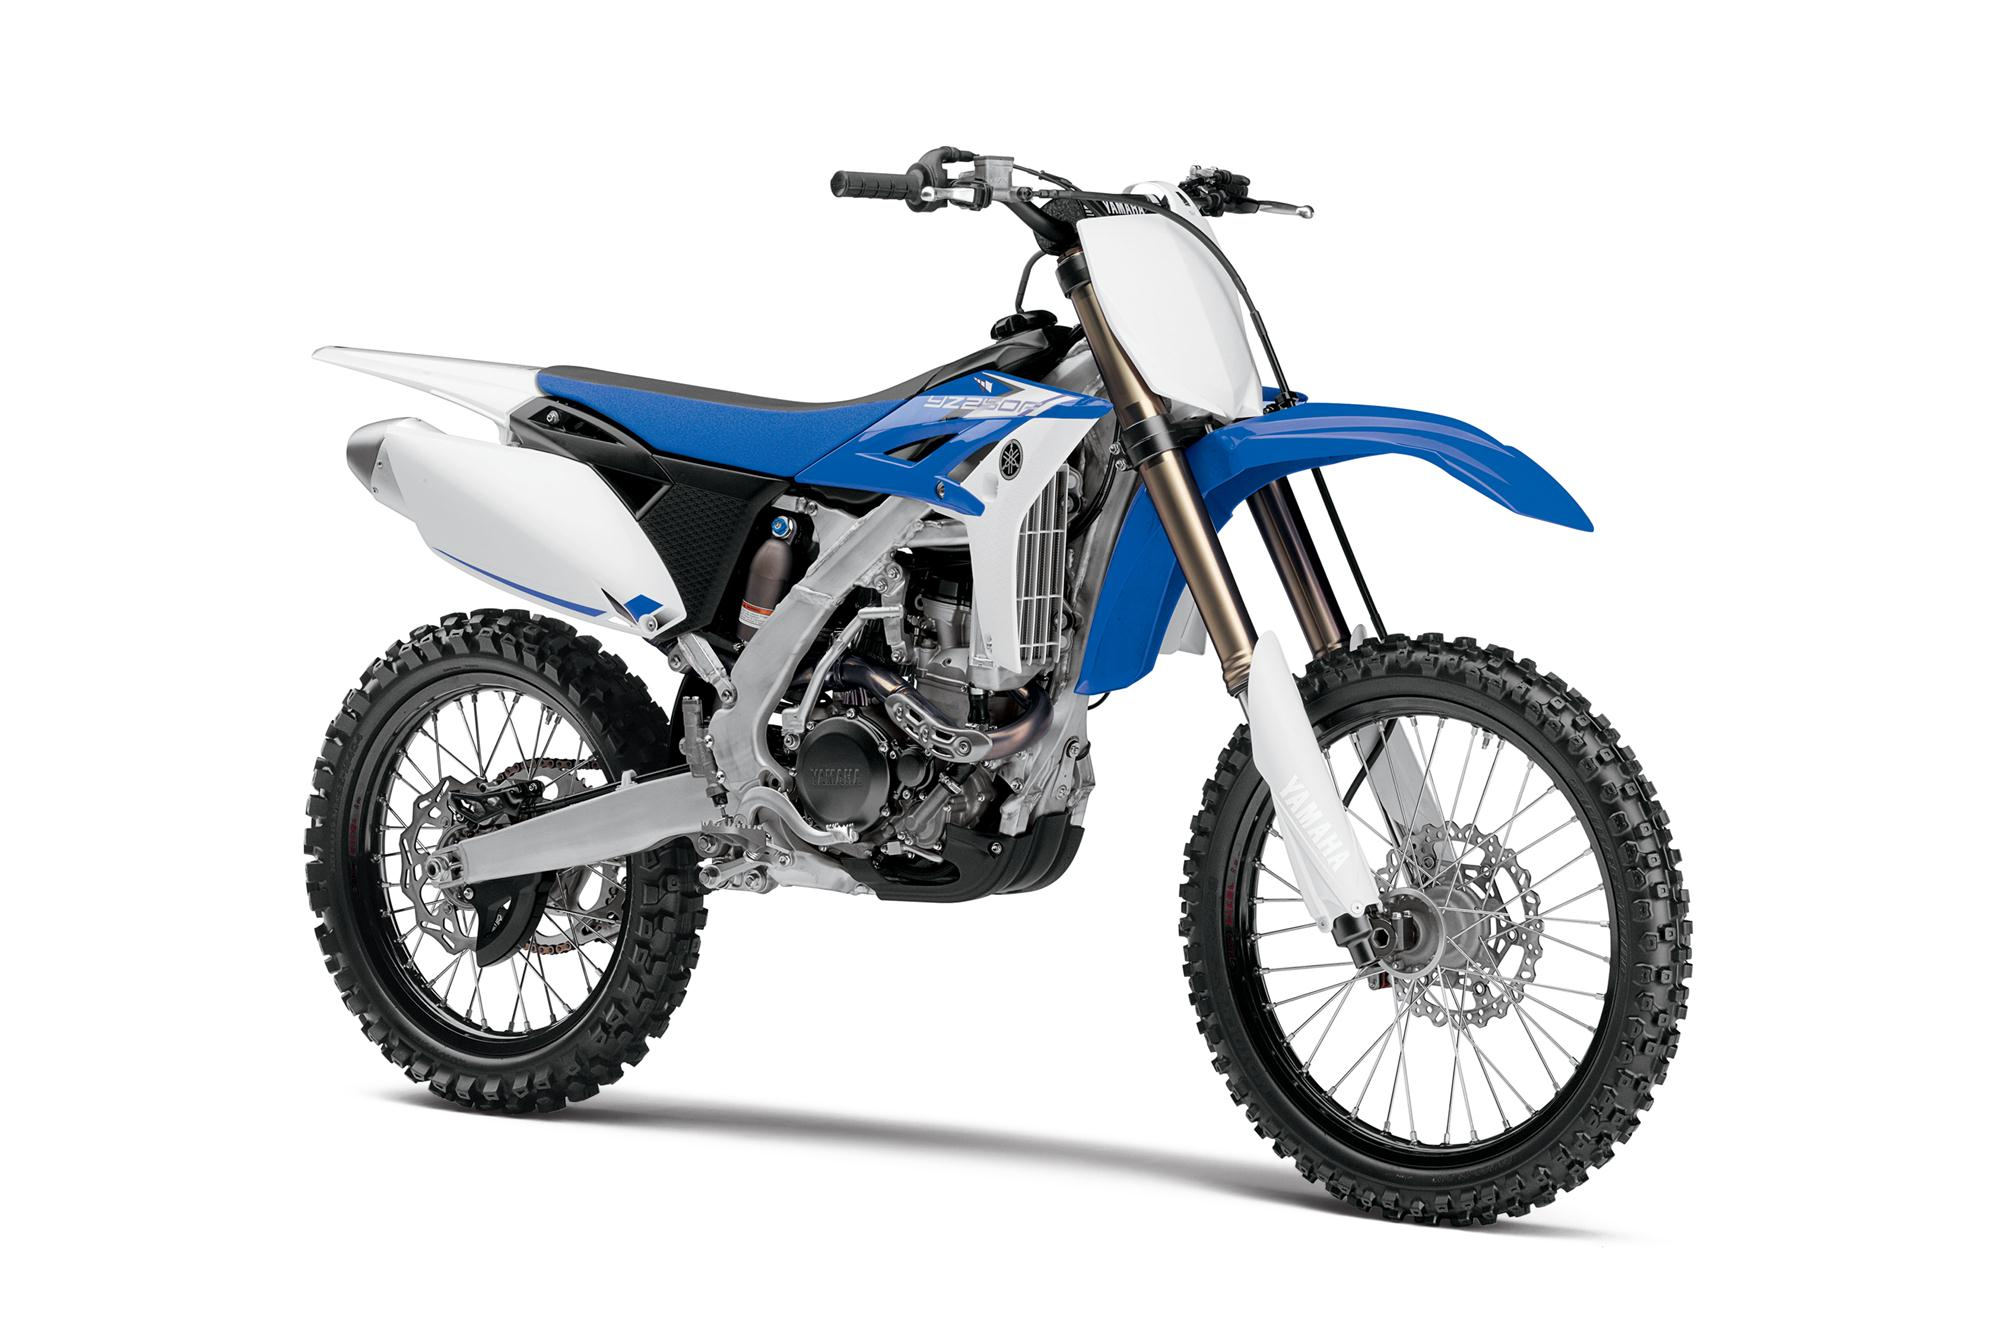 Yamaha Yz250f The Lightweight Dirt Racing Machine